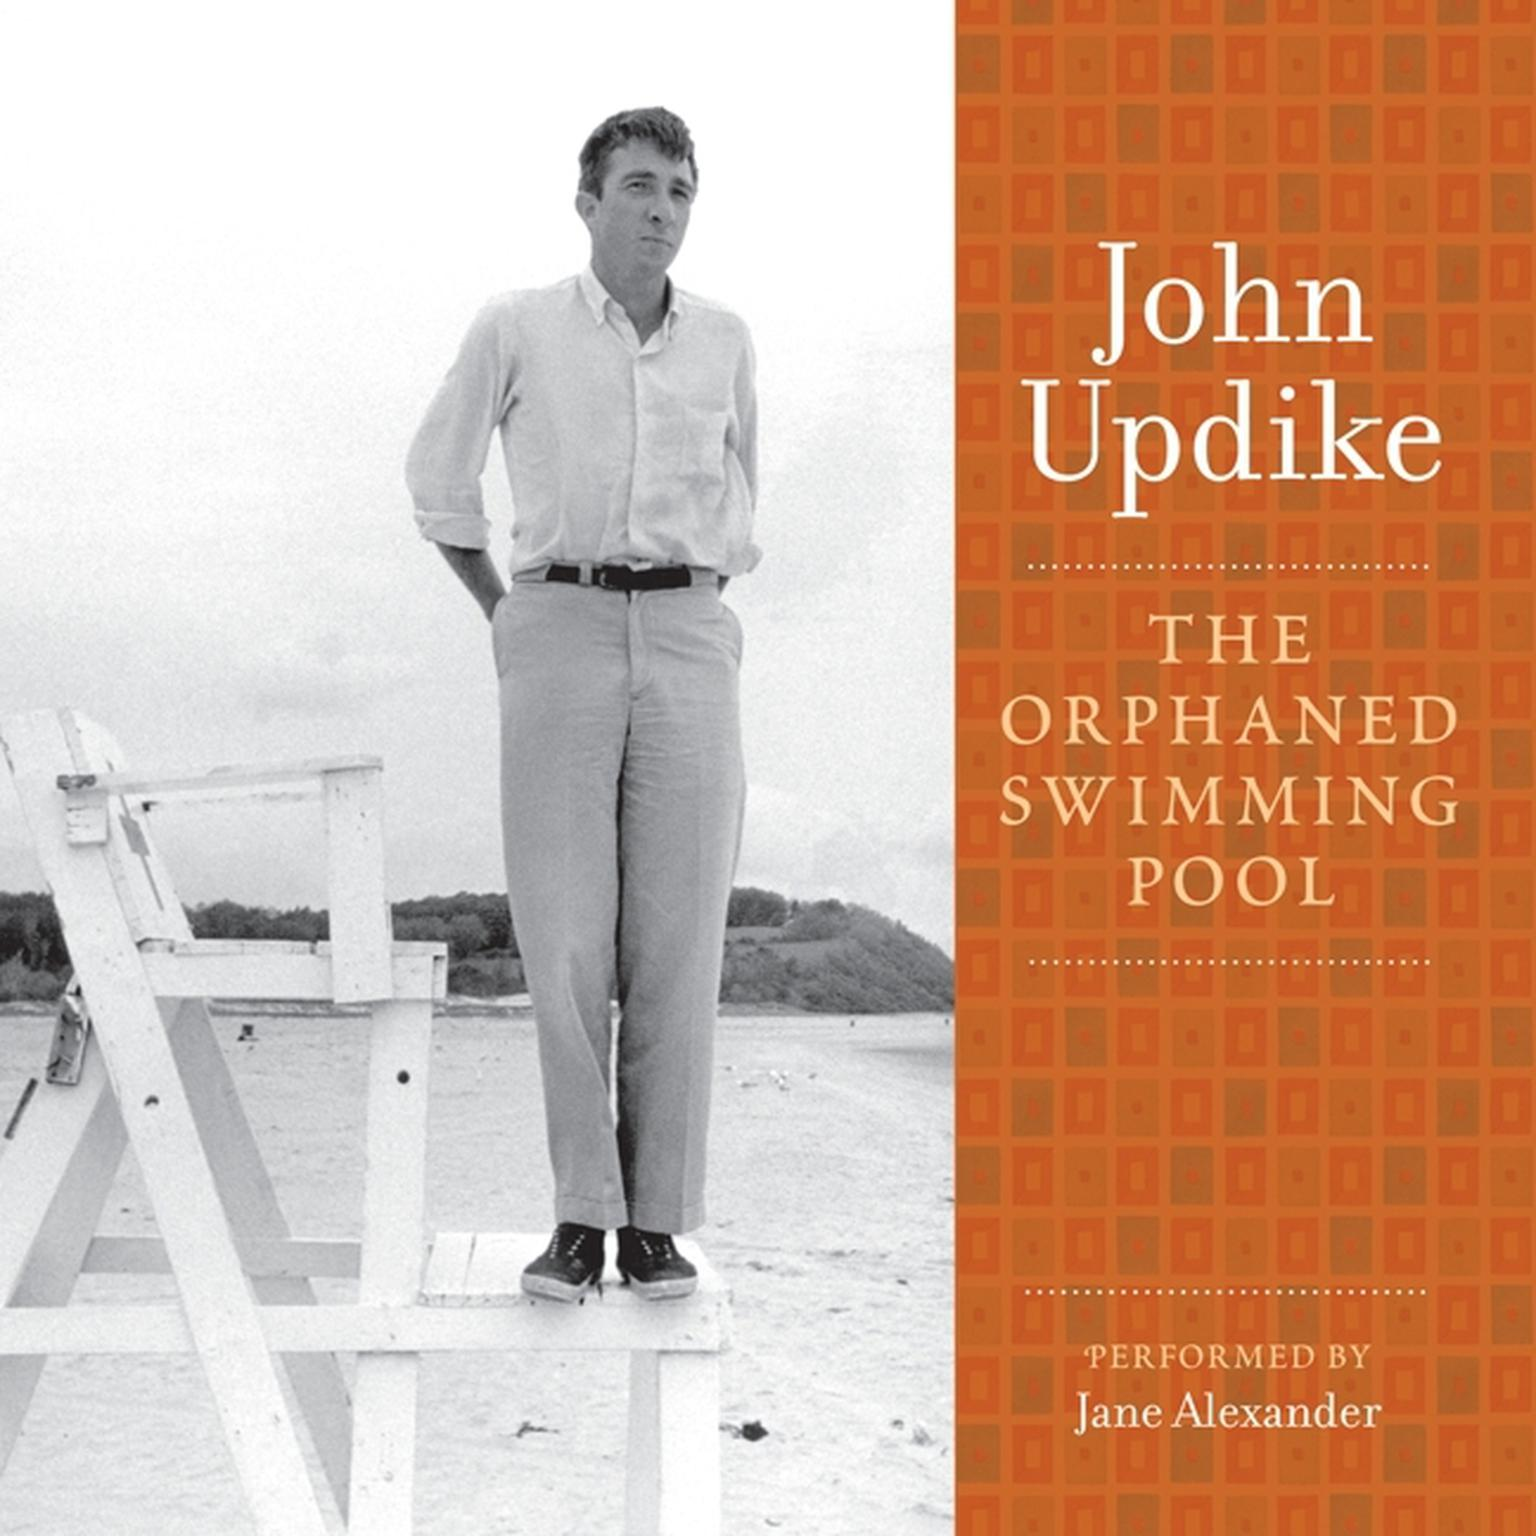 Printable The Orphaned Swimming Pool: A Selection from the John Updike Audio Collection Audiobook Cover Art